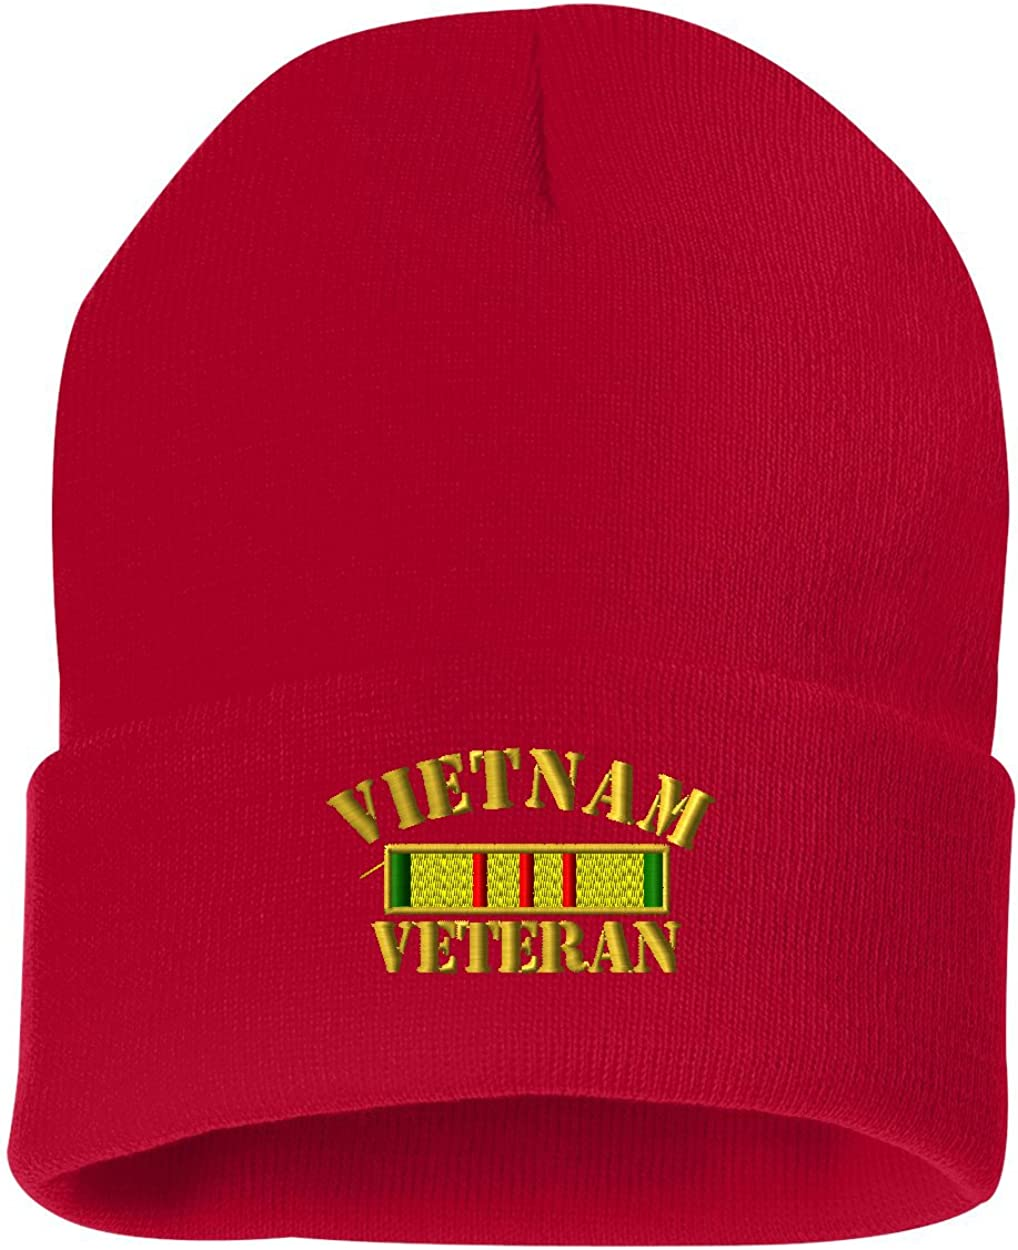 Vietnam Veteran Flag Custom Personalized Embroidery Embroidered Beanie